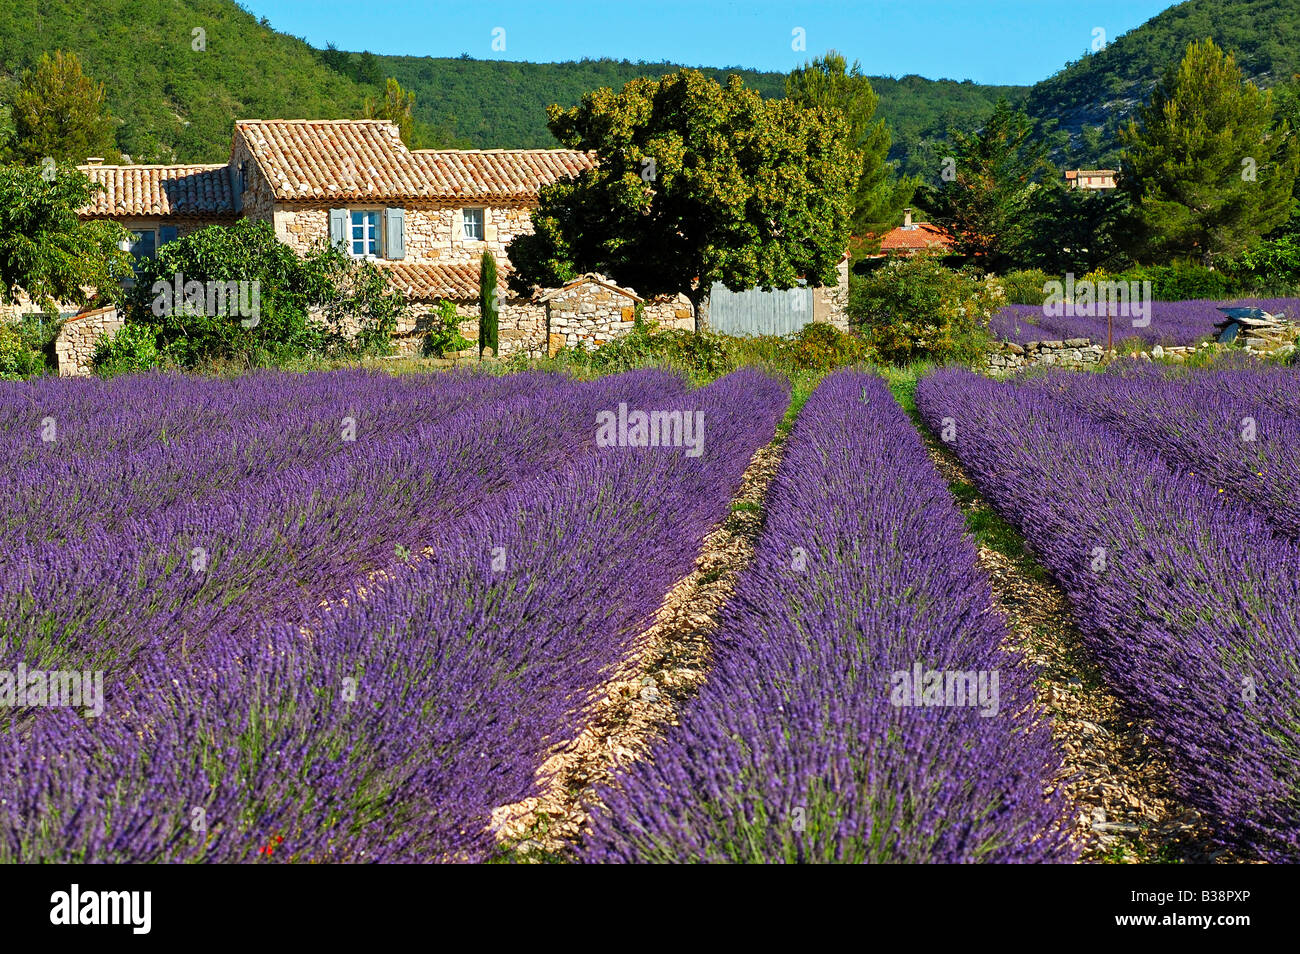 Typical Provencal house behind a field with blossoming Lavender near Banon, Provence, France Stock Photo